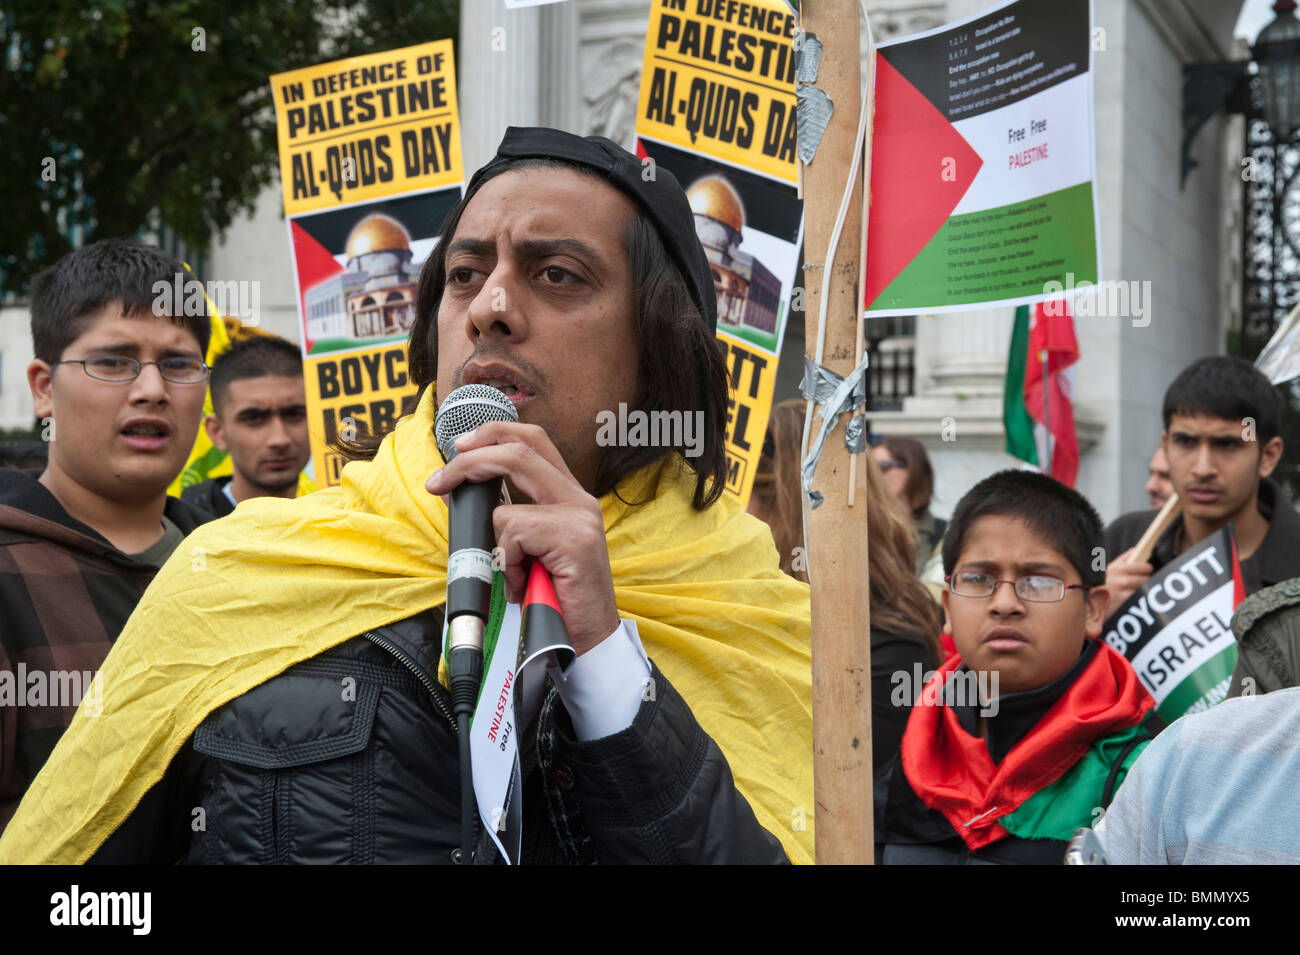 Muslim man speaking and placards at start of Al Quds Day (Jerusalem Day) march in London - Stock Image